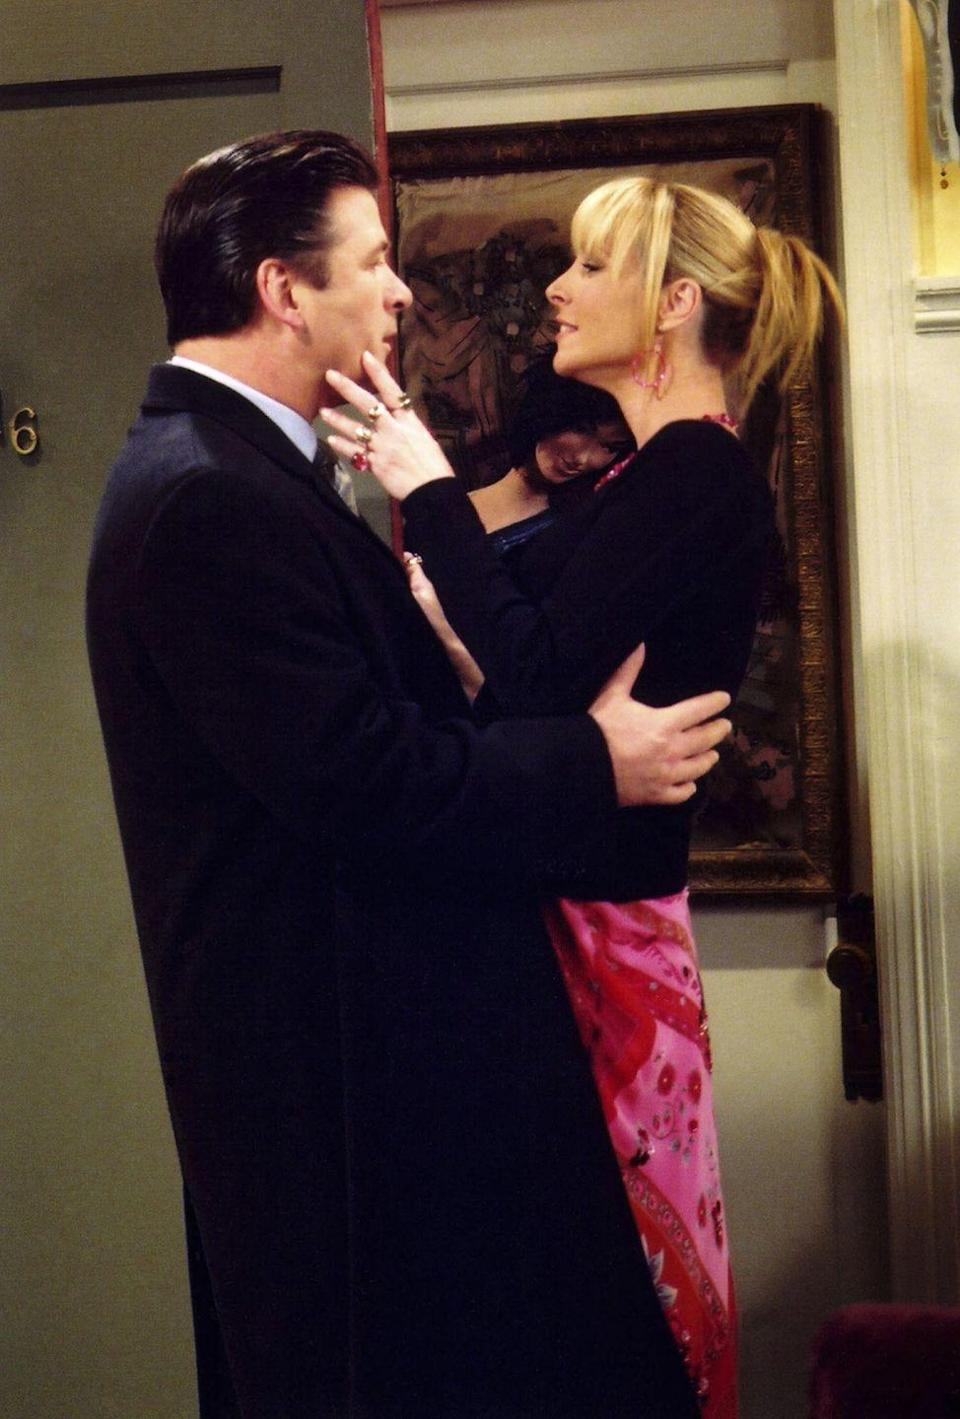 """<p>Alec Baldwin appeared in two episodes of the series as Parker, Pheobe's overly enthusiastic boyfriend <a href=""""https://www.youtube.com/watch?v=0xFrBfeKJoo"""" rel=""""nofollow noopener"""" target=""""_blank"""" data-ylk=""""slk:whose fascination with Massapequa"""" class=""""link rapid-noclick-resp"""">whose fascination with Massapequa</a><span>irritates everyone.</span></p>"""